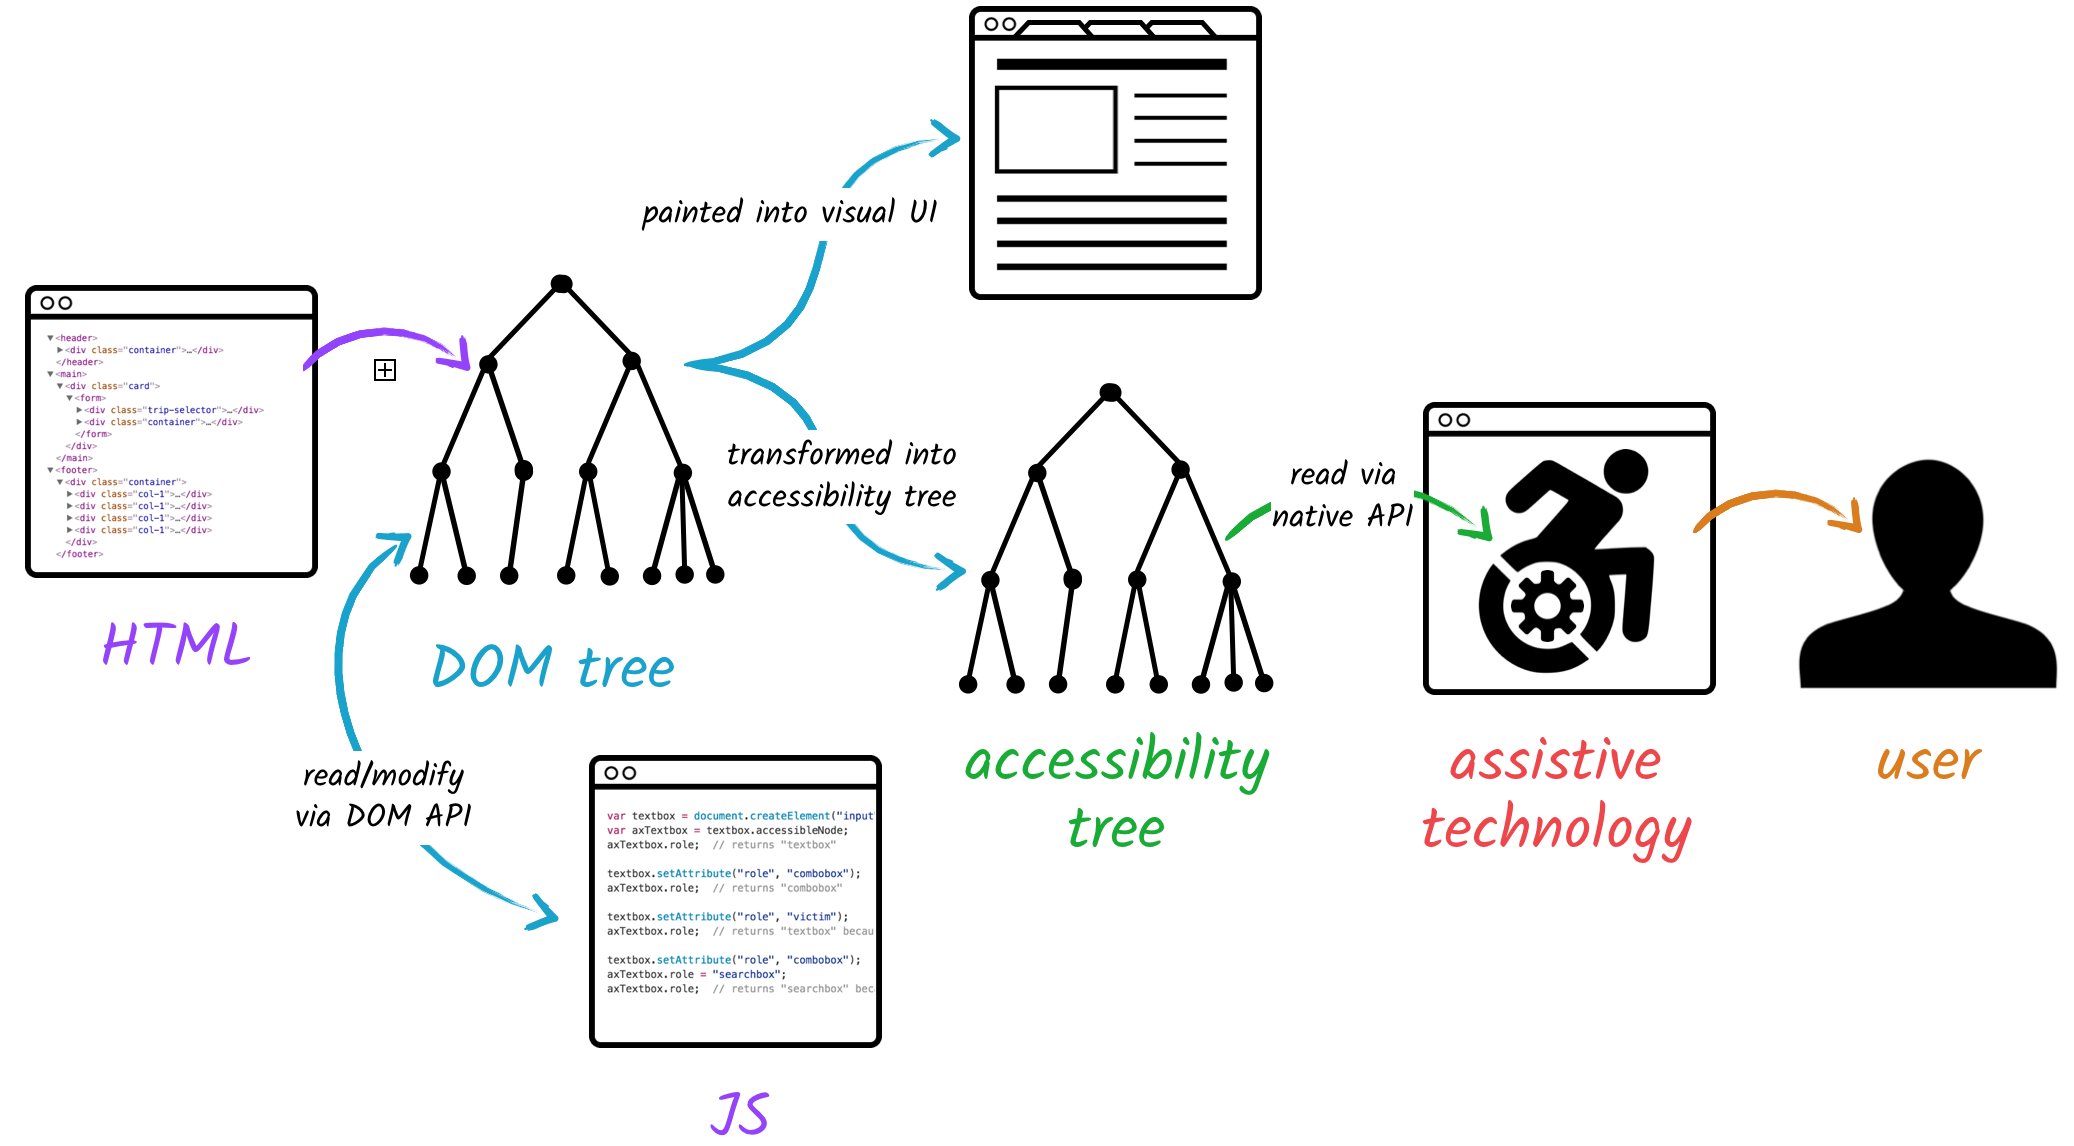 DOM tree, accessibility tree and platform accessibility APIs